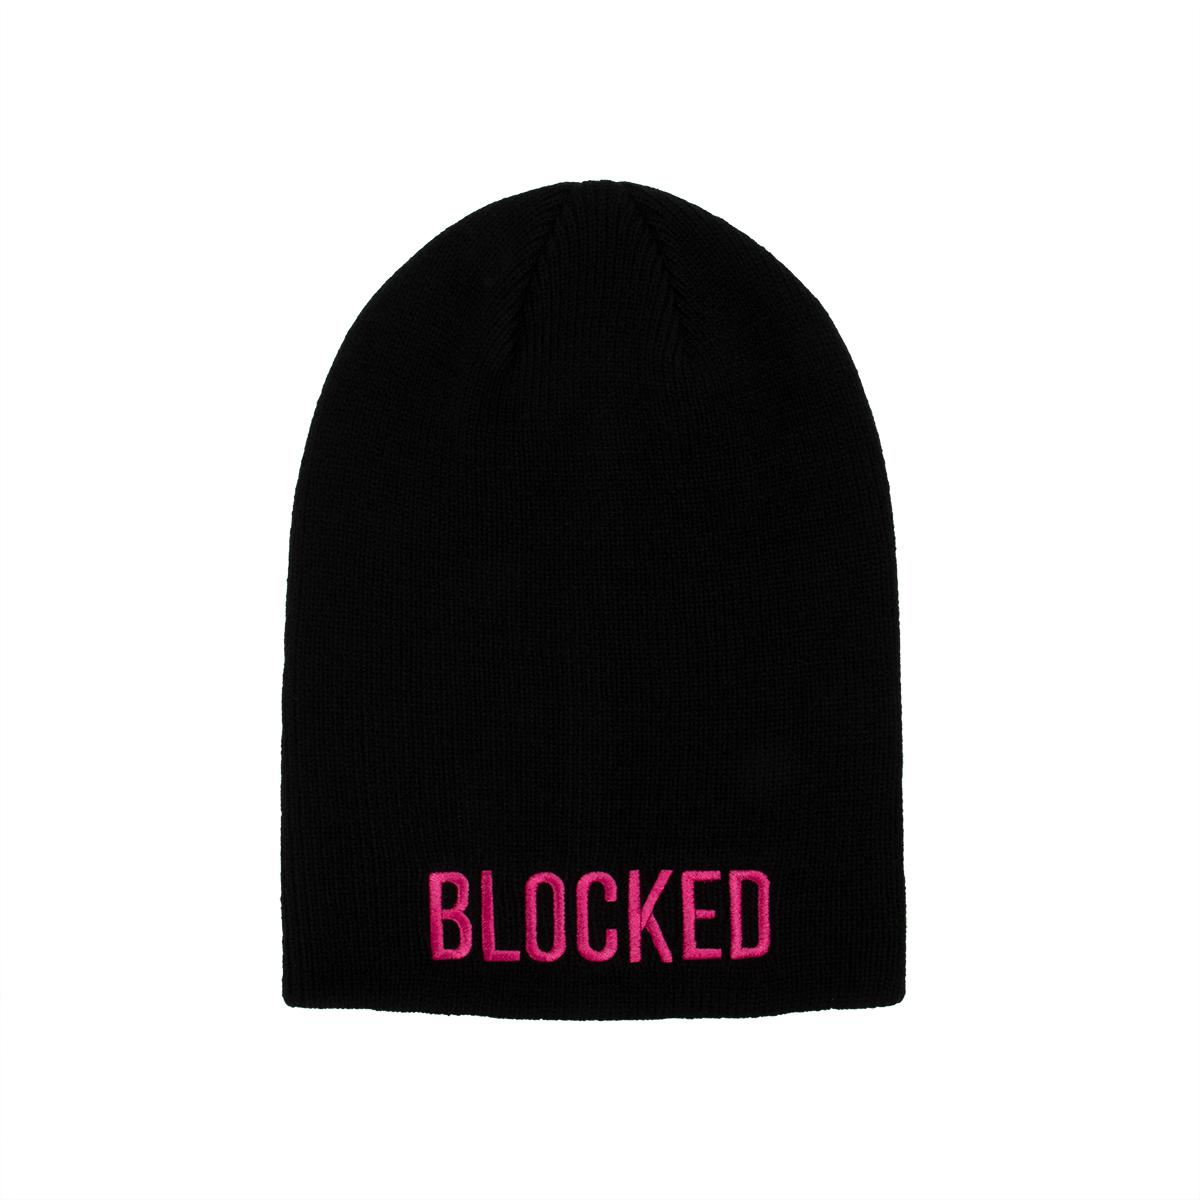 CHD Blocked Beanie